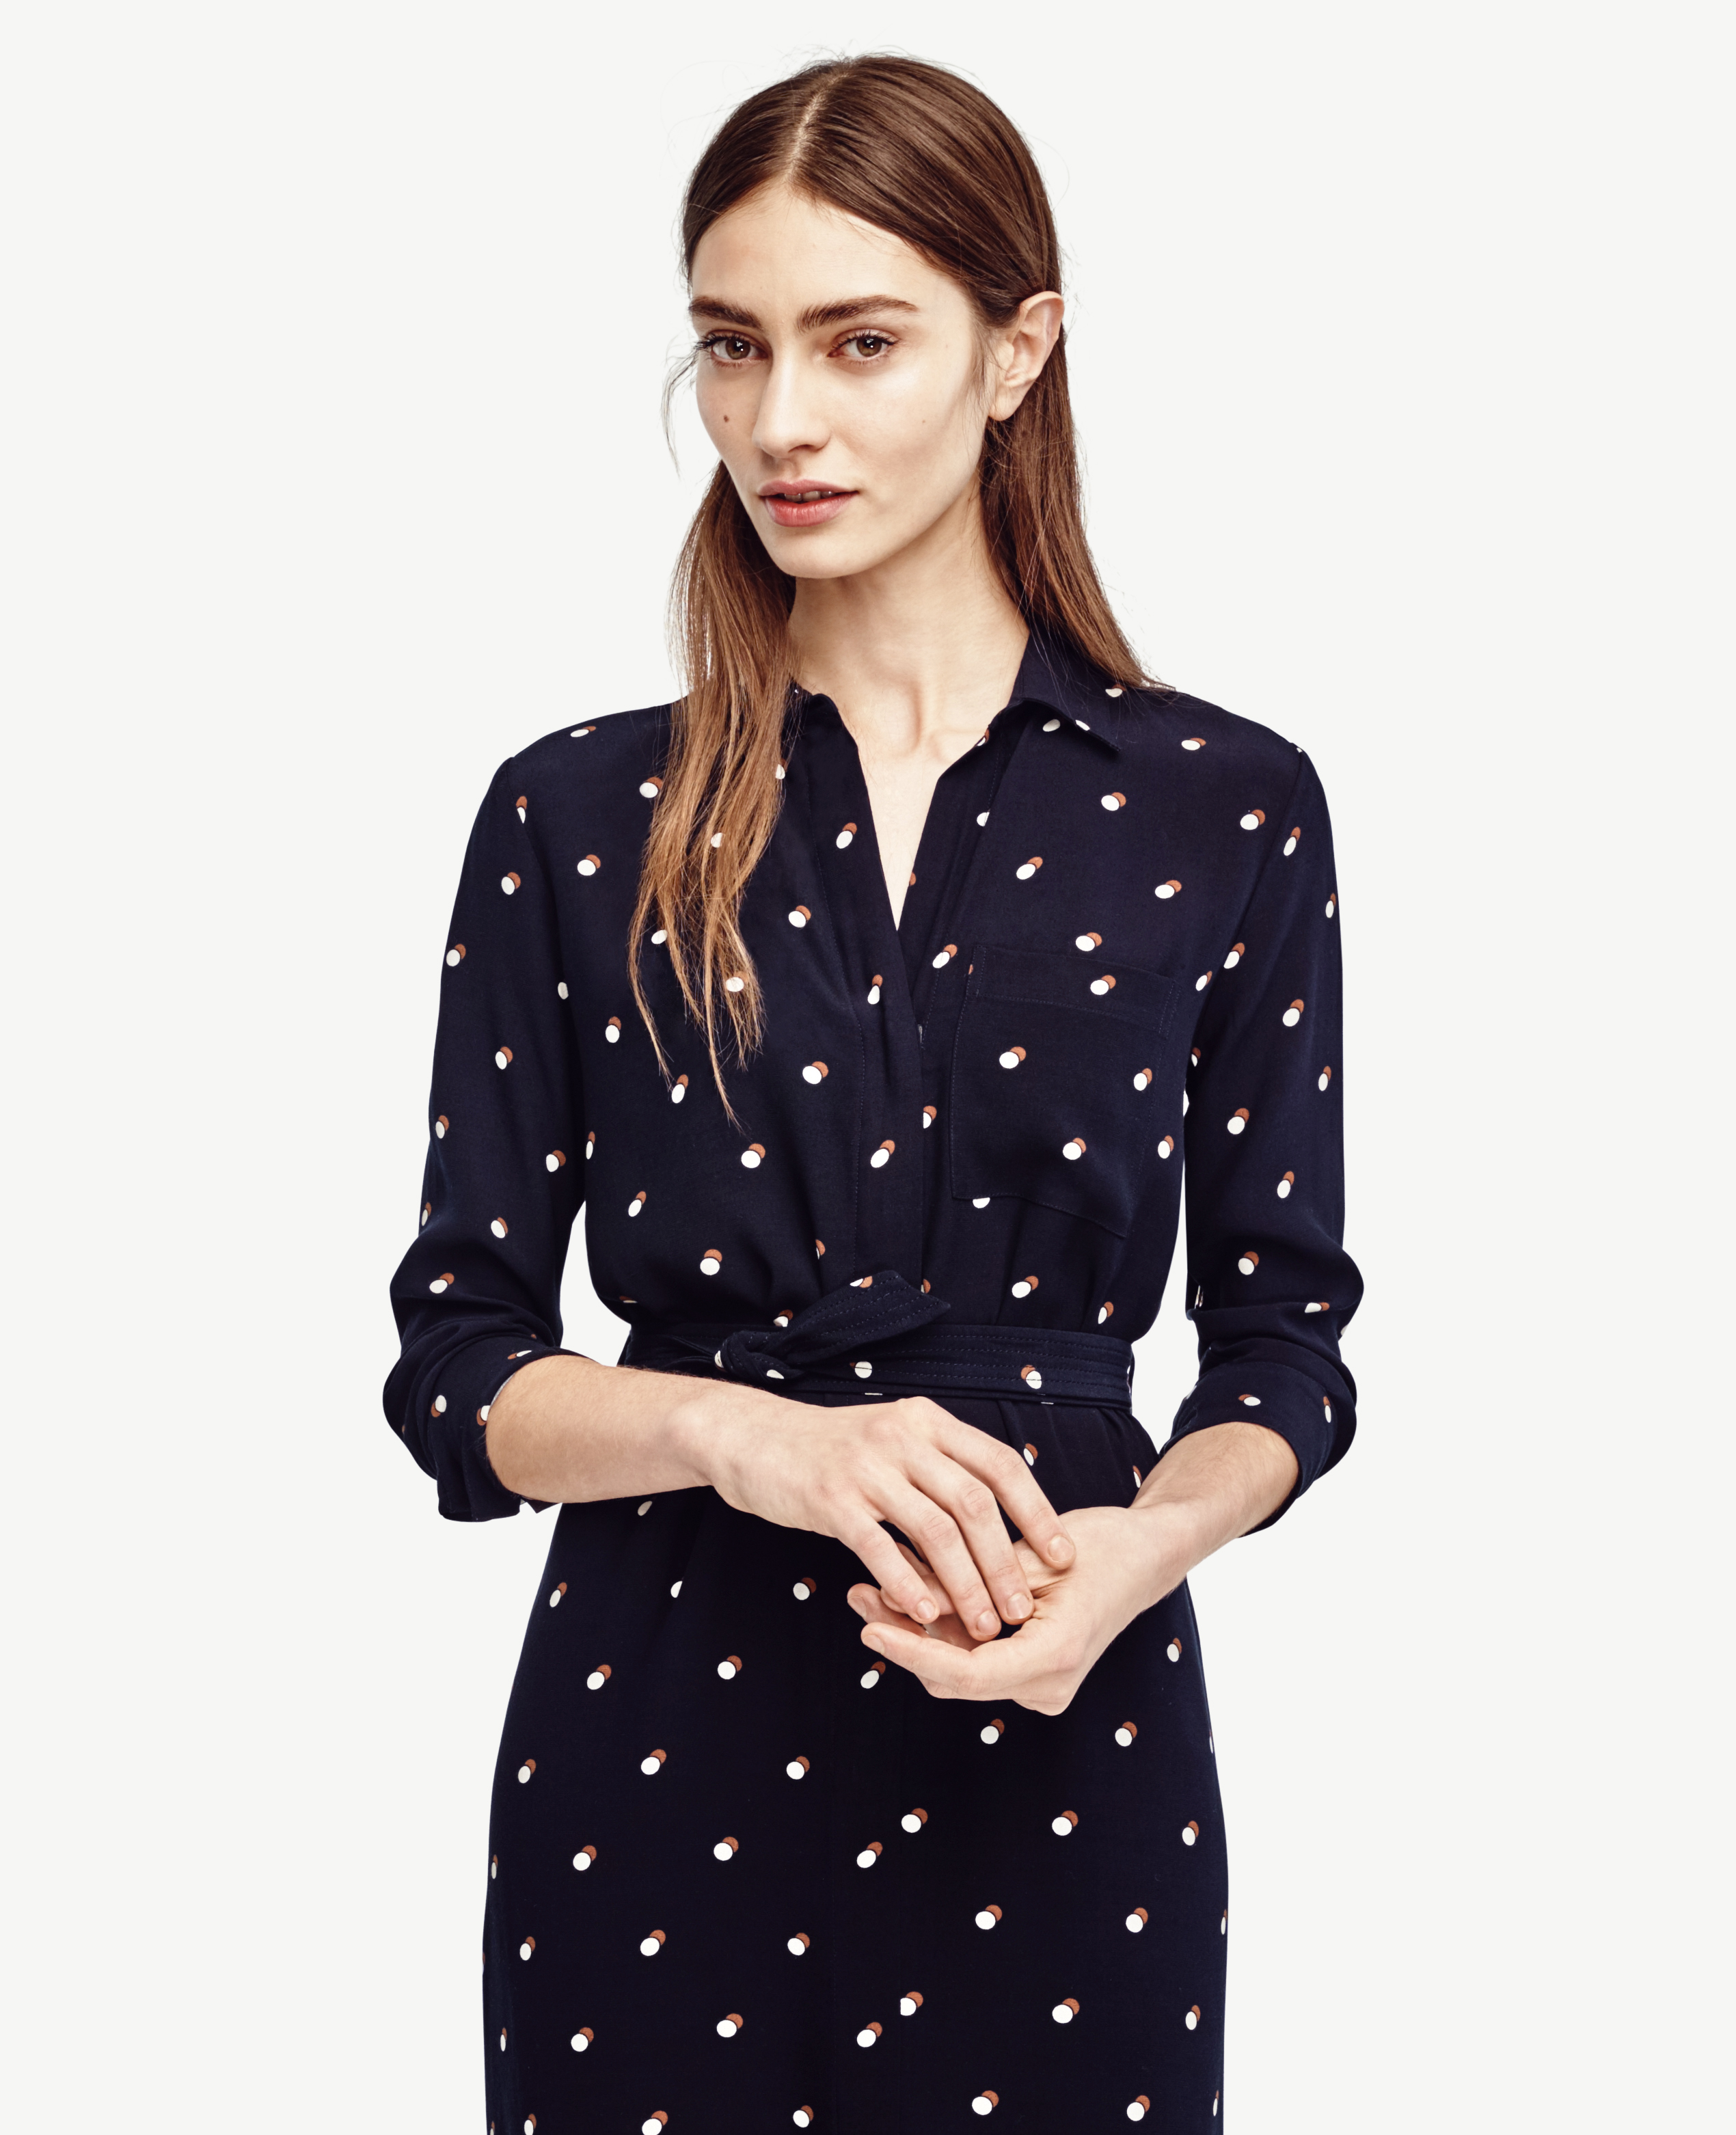 Lyst - Ann Taylor Double Dot Long Sleeve Shirtdress in Blue